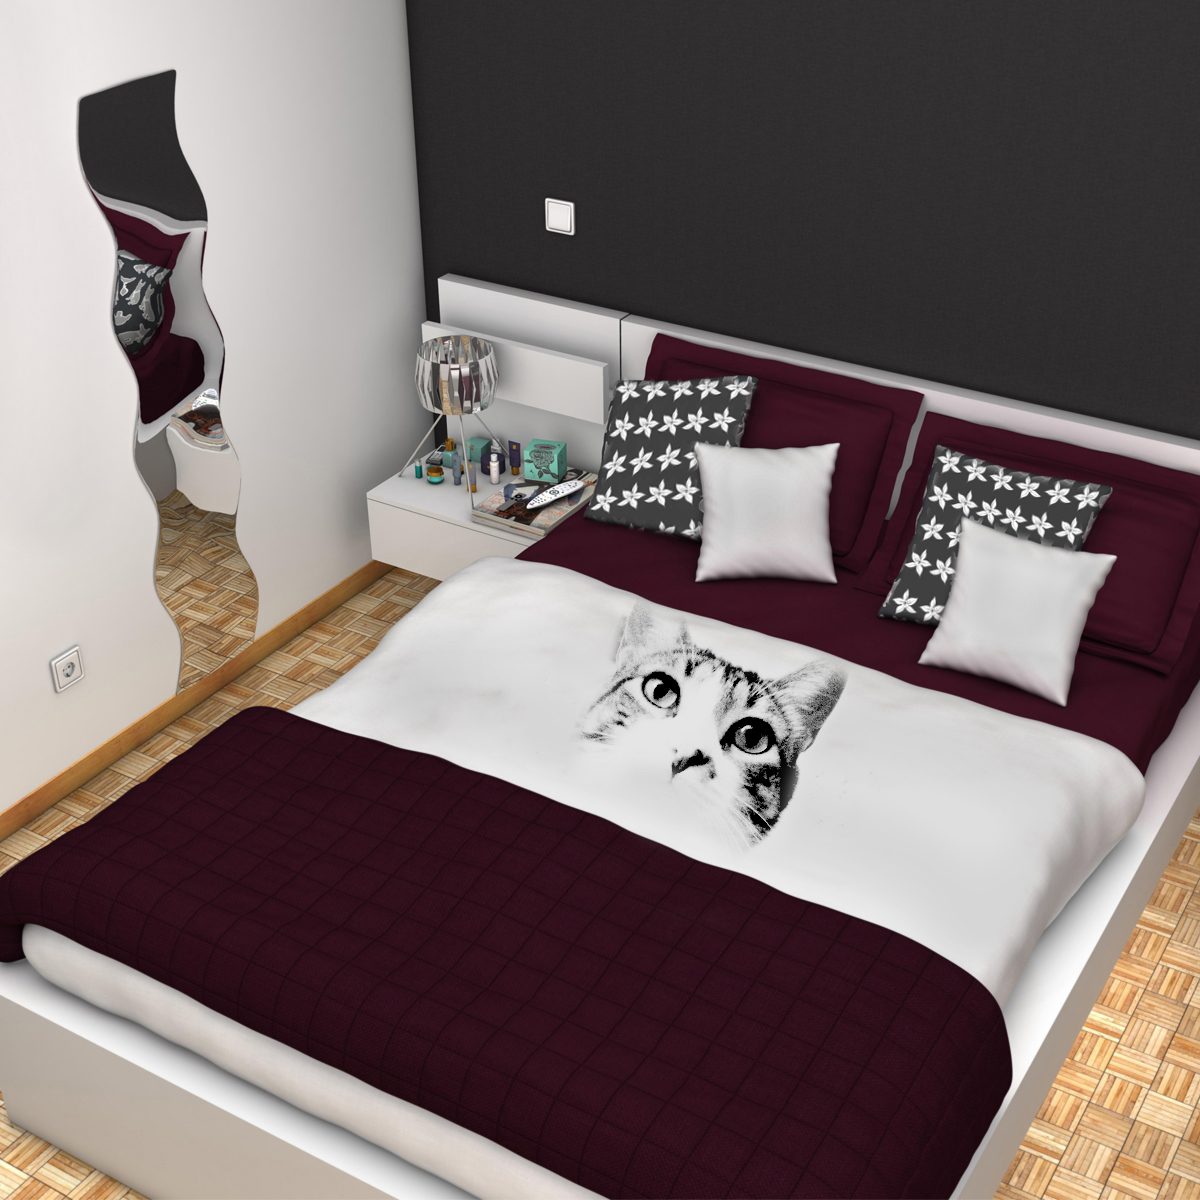 bedroom 8 3d model 3ds max fbx c4d mb mbek 159552